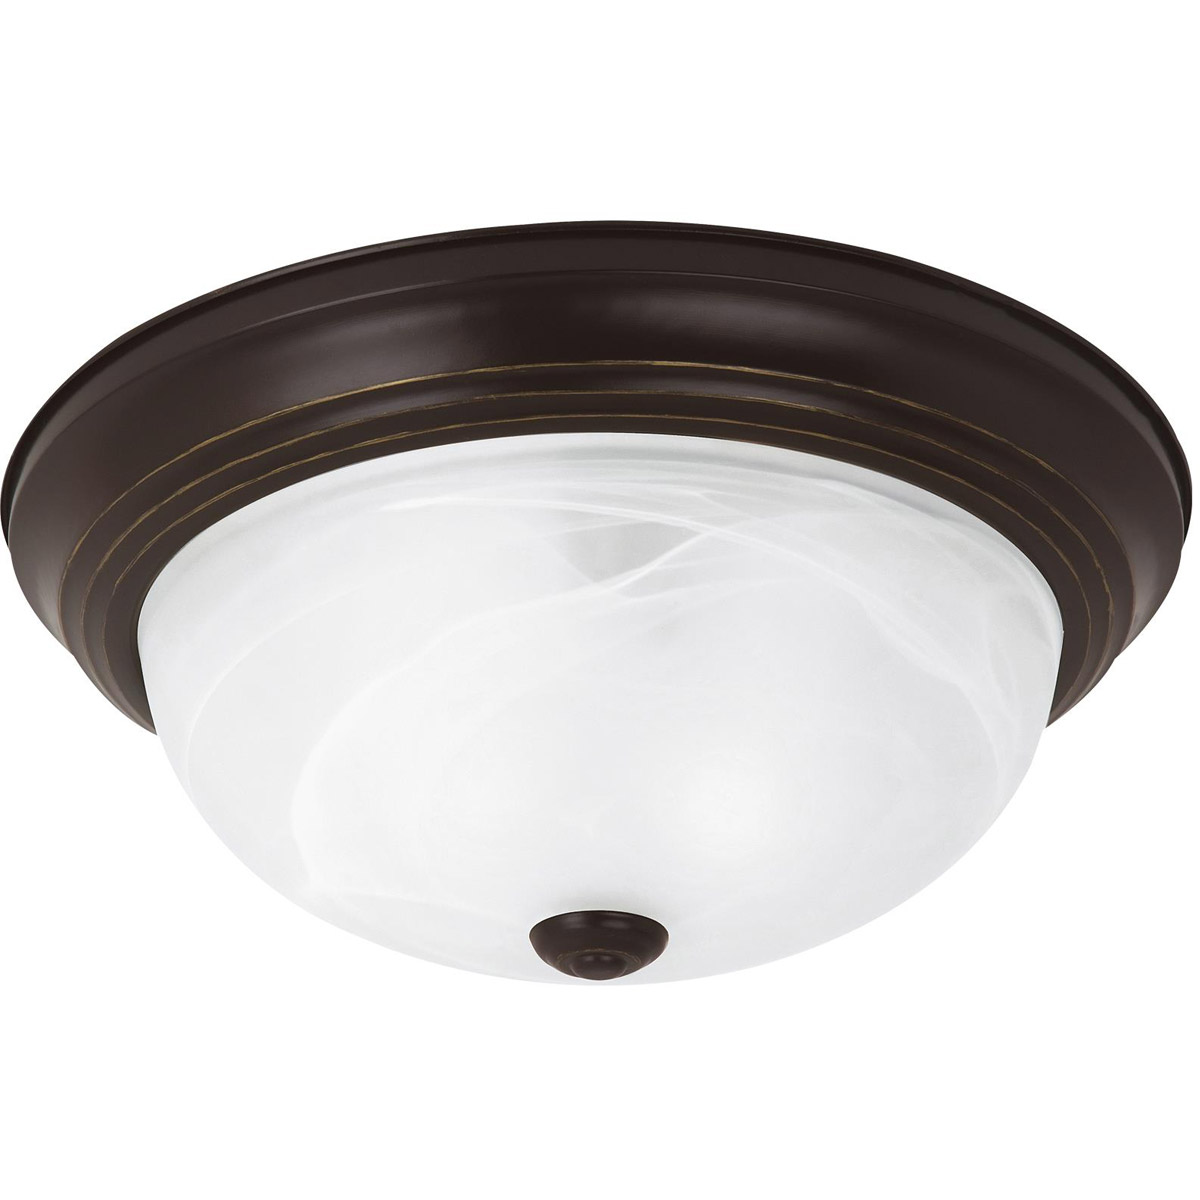 Sea Gull 75942-782 Windgate 2 Light 13 inch Heirloom Bronze Flush Mount Ceiling Light in Standard photo